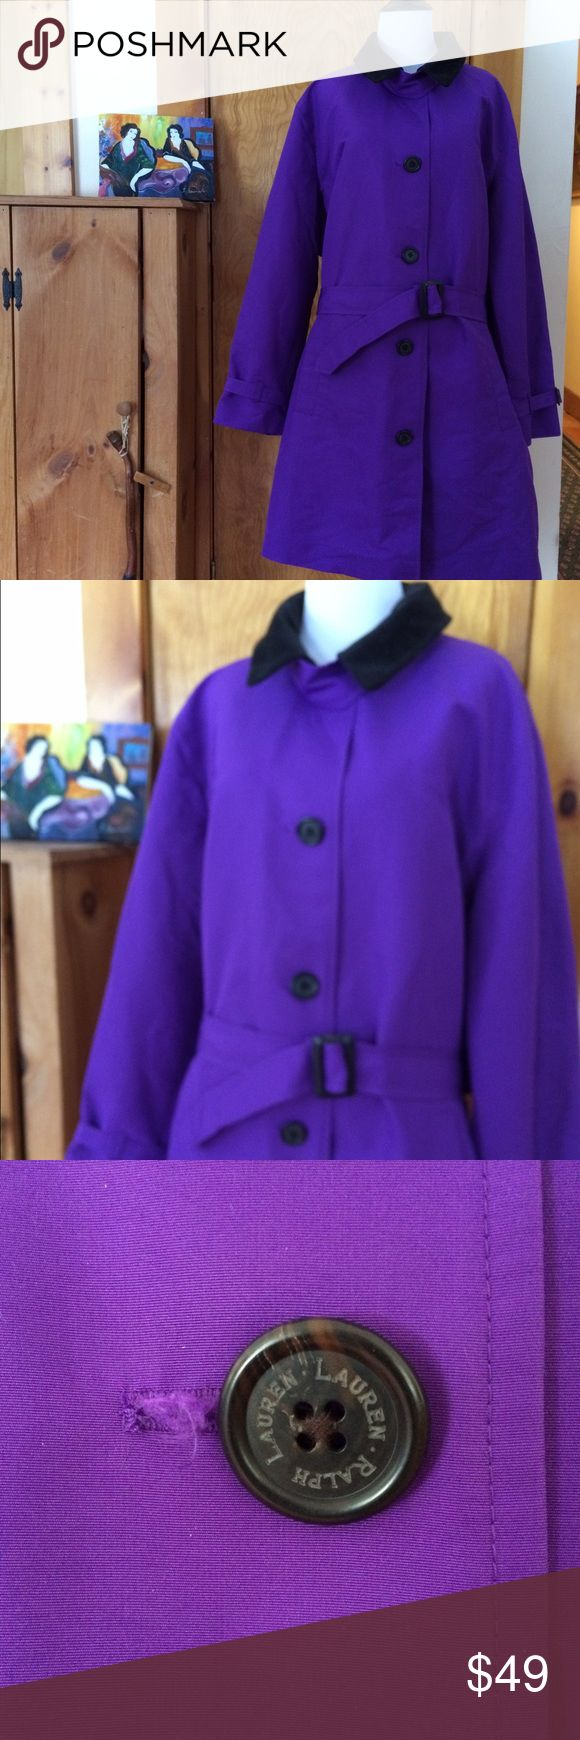 Ralph Lauren Purple Trench Coat 3 X Water resistant poly use in the mist or everyday for a pop of color good clean solid shape for pre owned tiny area around one button where the button hole is a bit frayed but holds closed and isn't structural really nice price for this expensive coat. Ralph Lauren Jackets & Coats Trench Coats